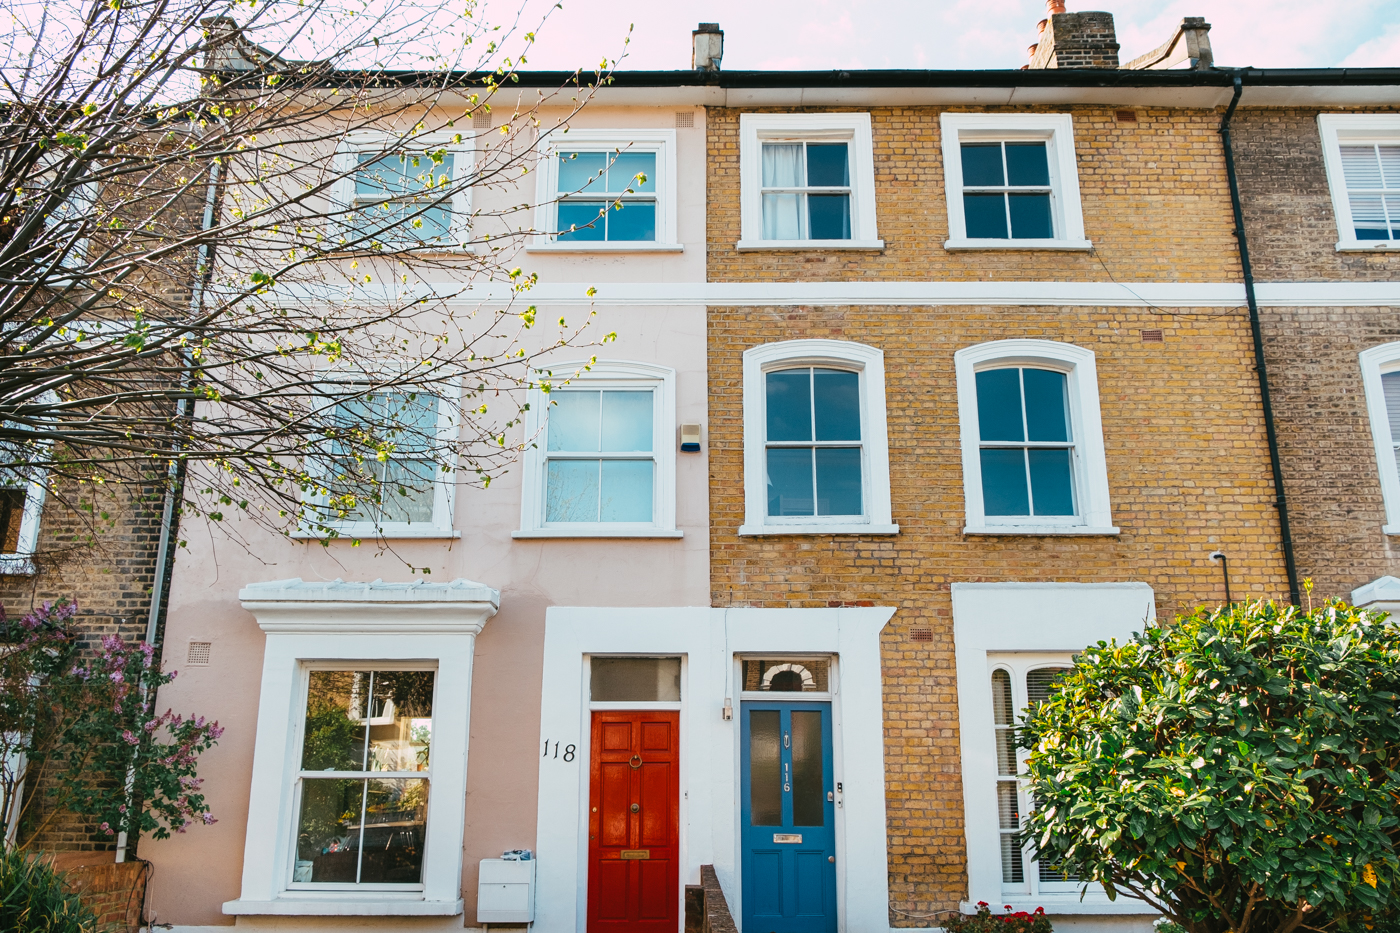 Q&A: Will lettings or sales win out in the property market?